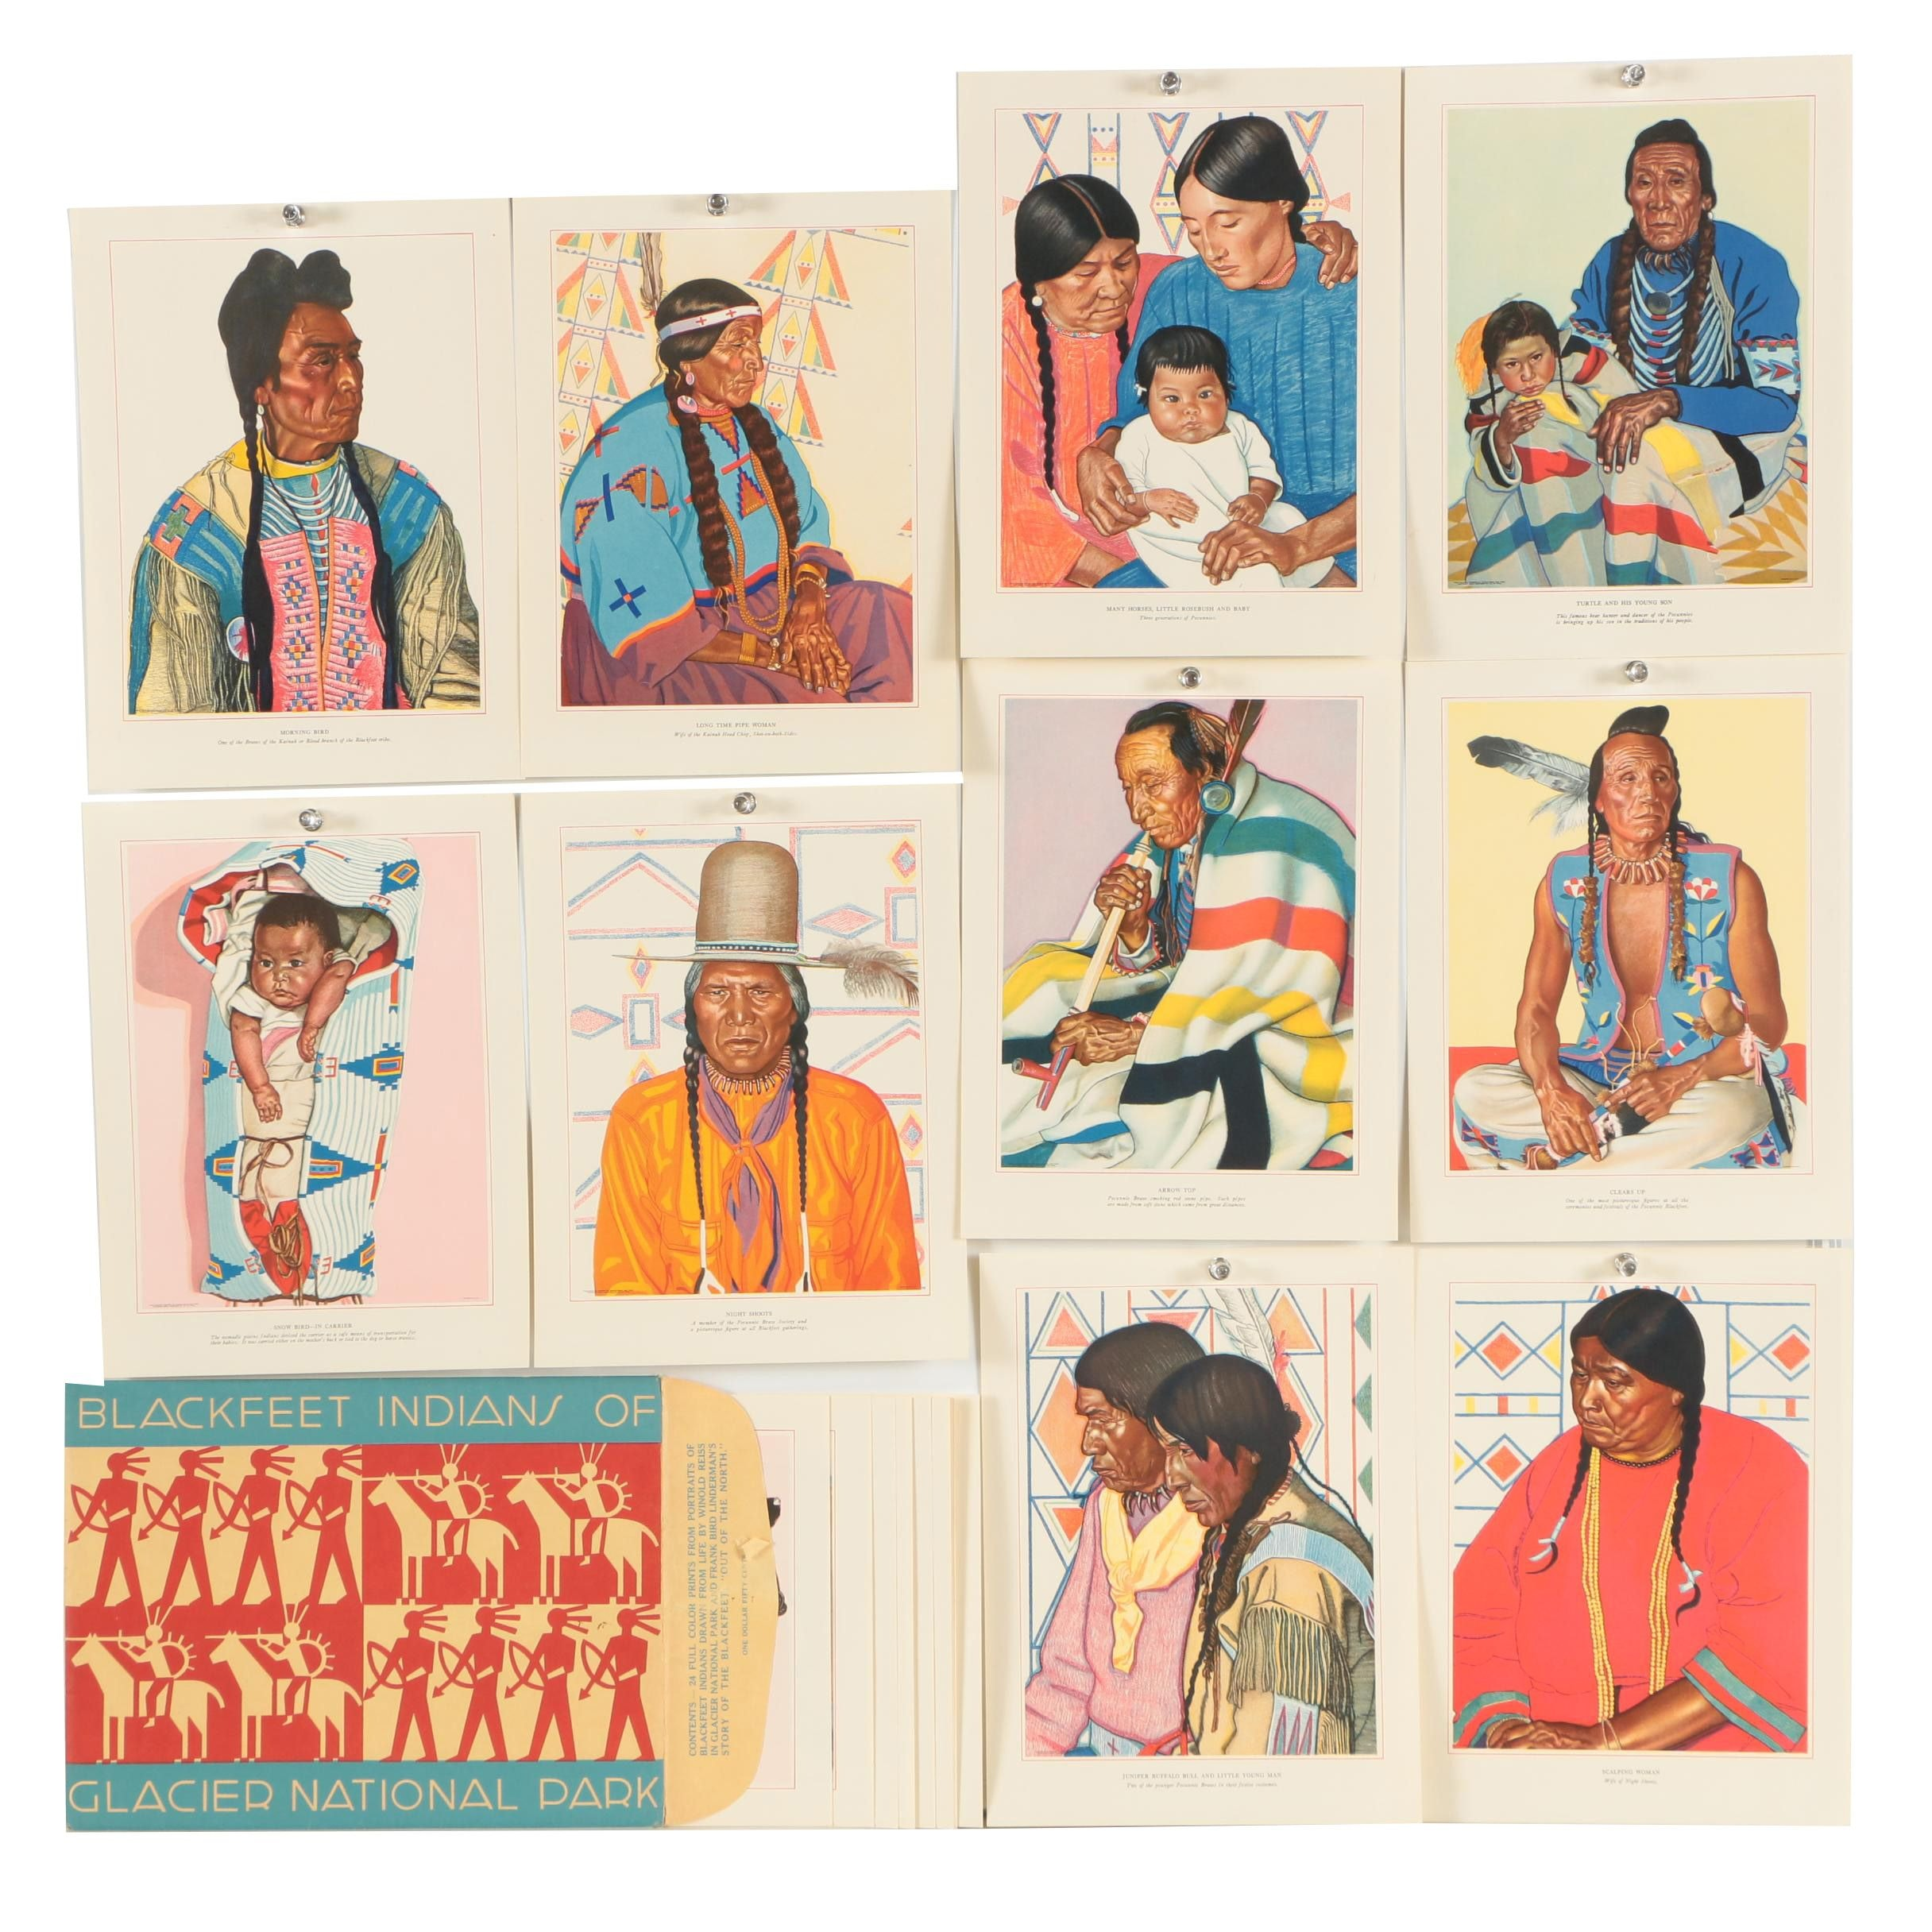 Vintage Offset Lithographs After Winold Reiss Paintings of Blackfeet Indians